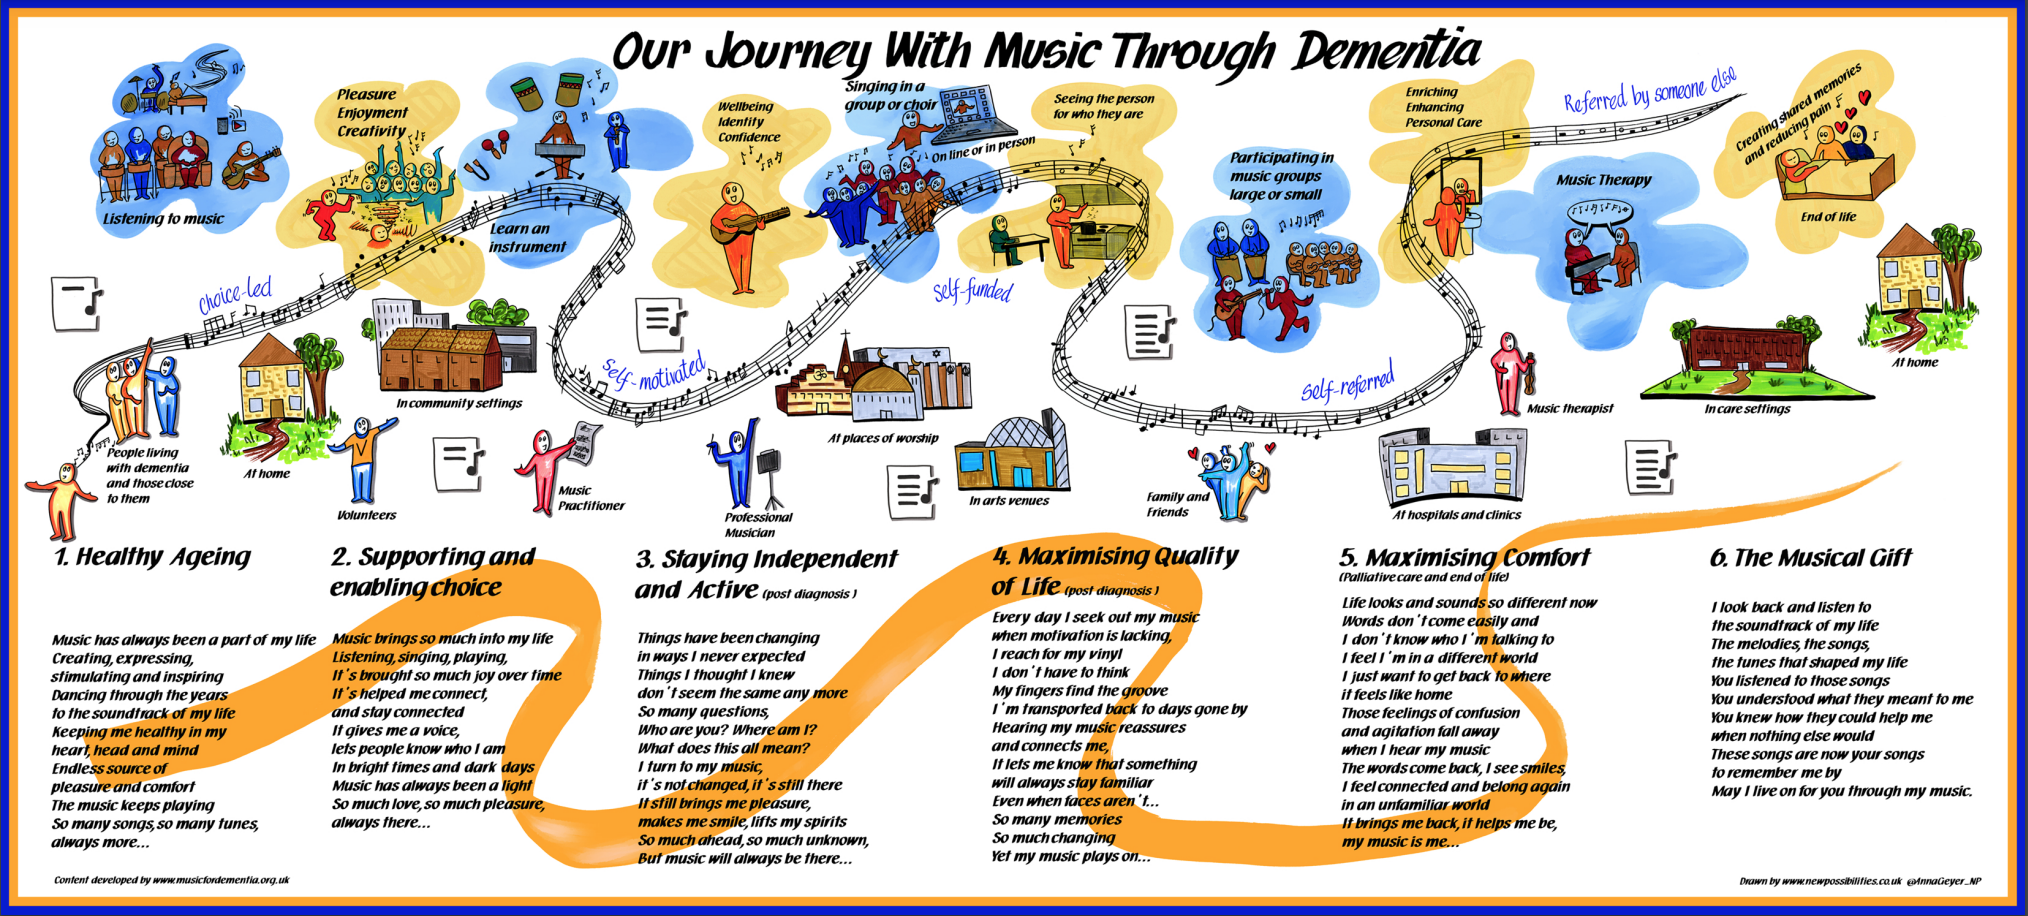 our journey with music through dementia